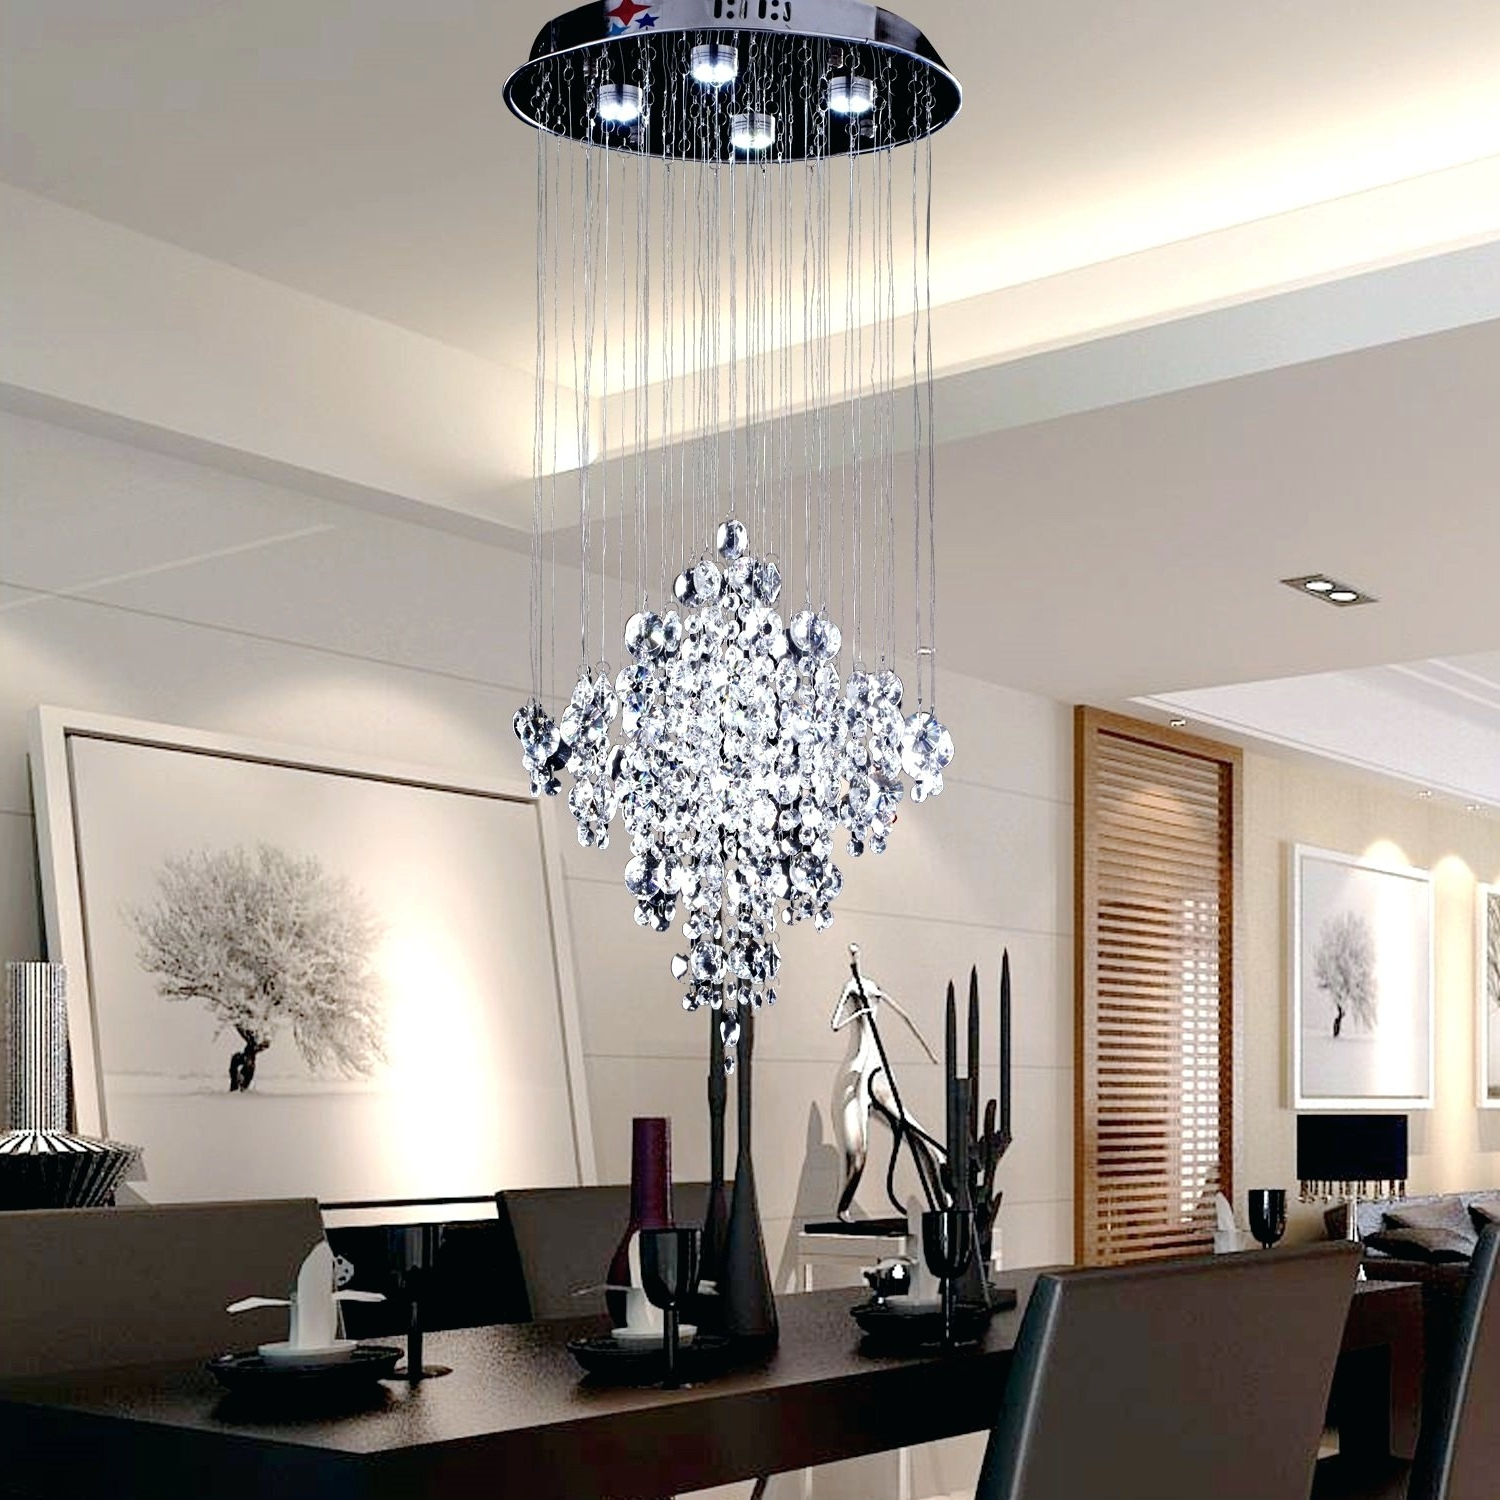 Preferred Large Modern Chandeliers Regarding Chandeliers Design : Fabulous Large Modern Chandeliers Contemporary (View 17 of 20)